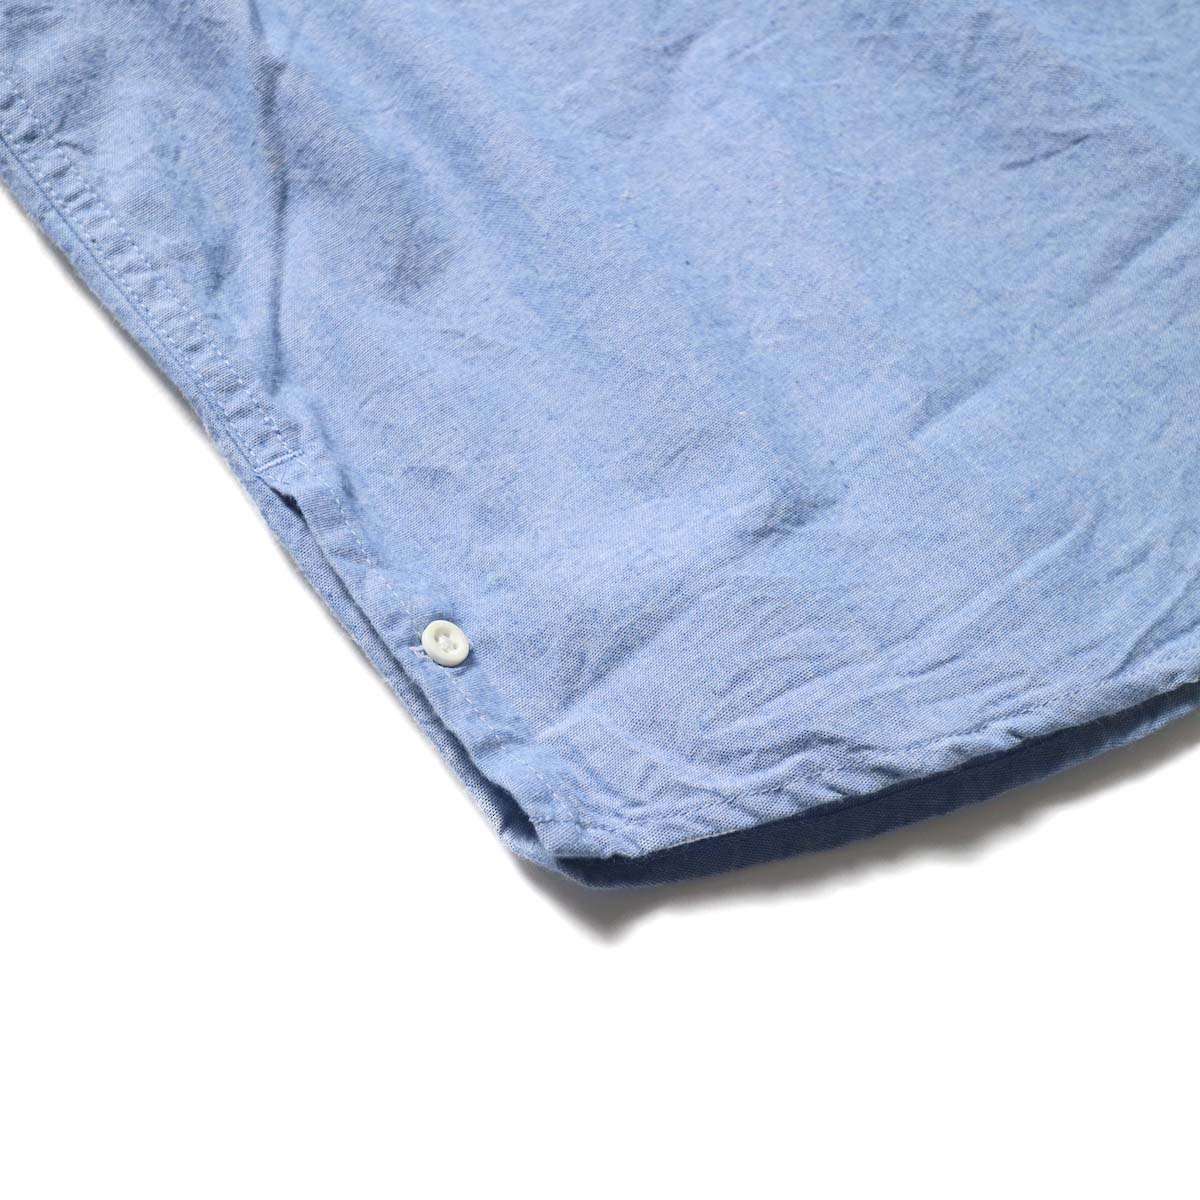 nonnative / RANCHER PULLOVER SHIRT RELAXED FIT COTTON 5oz CHAMBRAY (Sax)裾